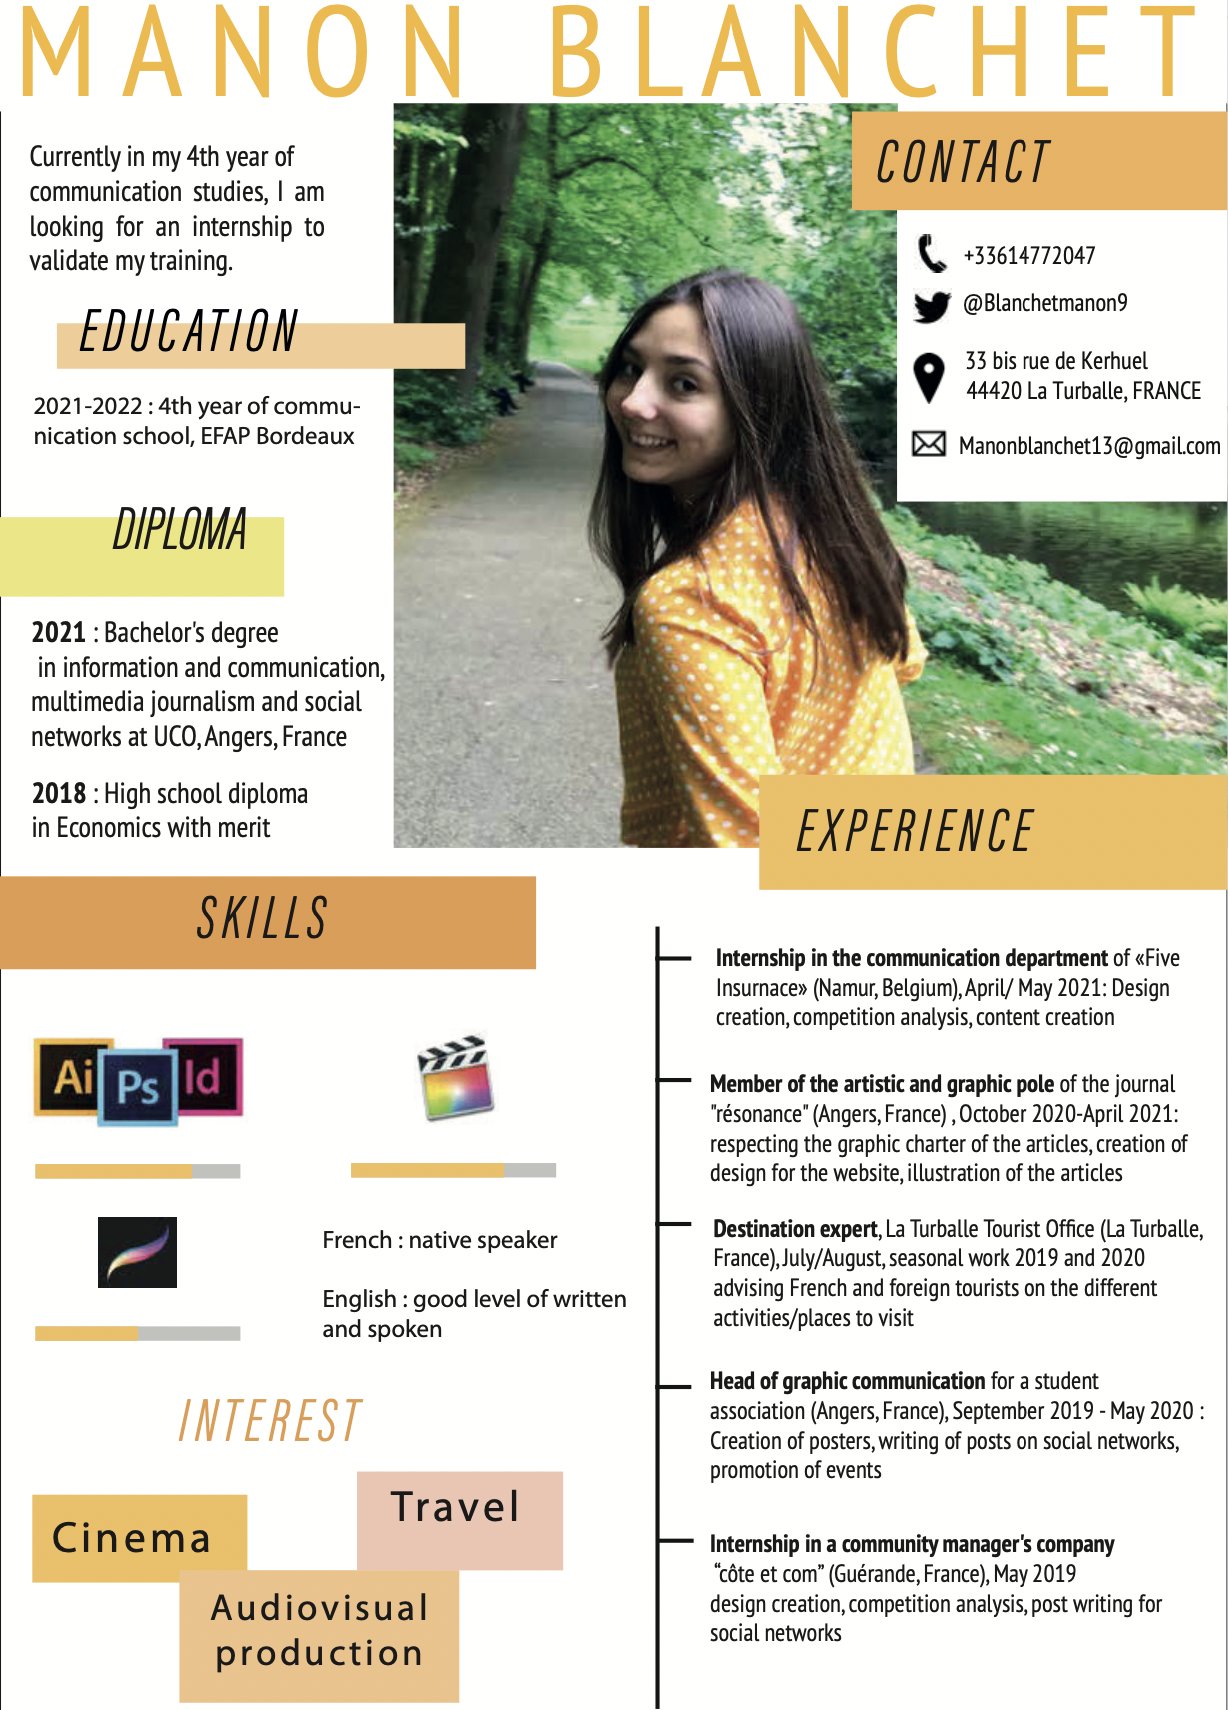 """Currently in my 4th year of communication studies, 